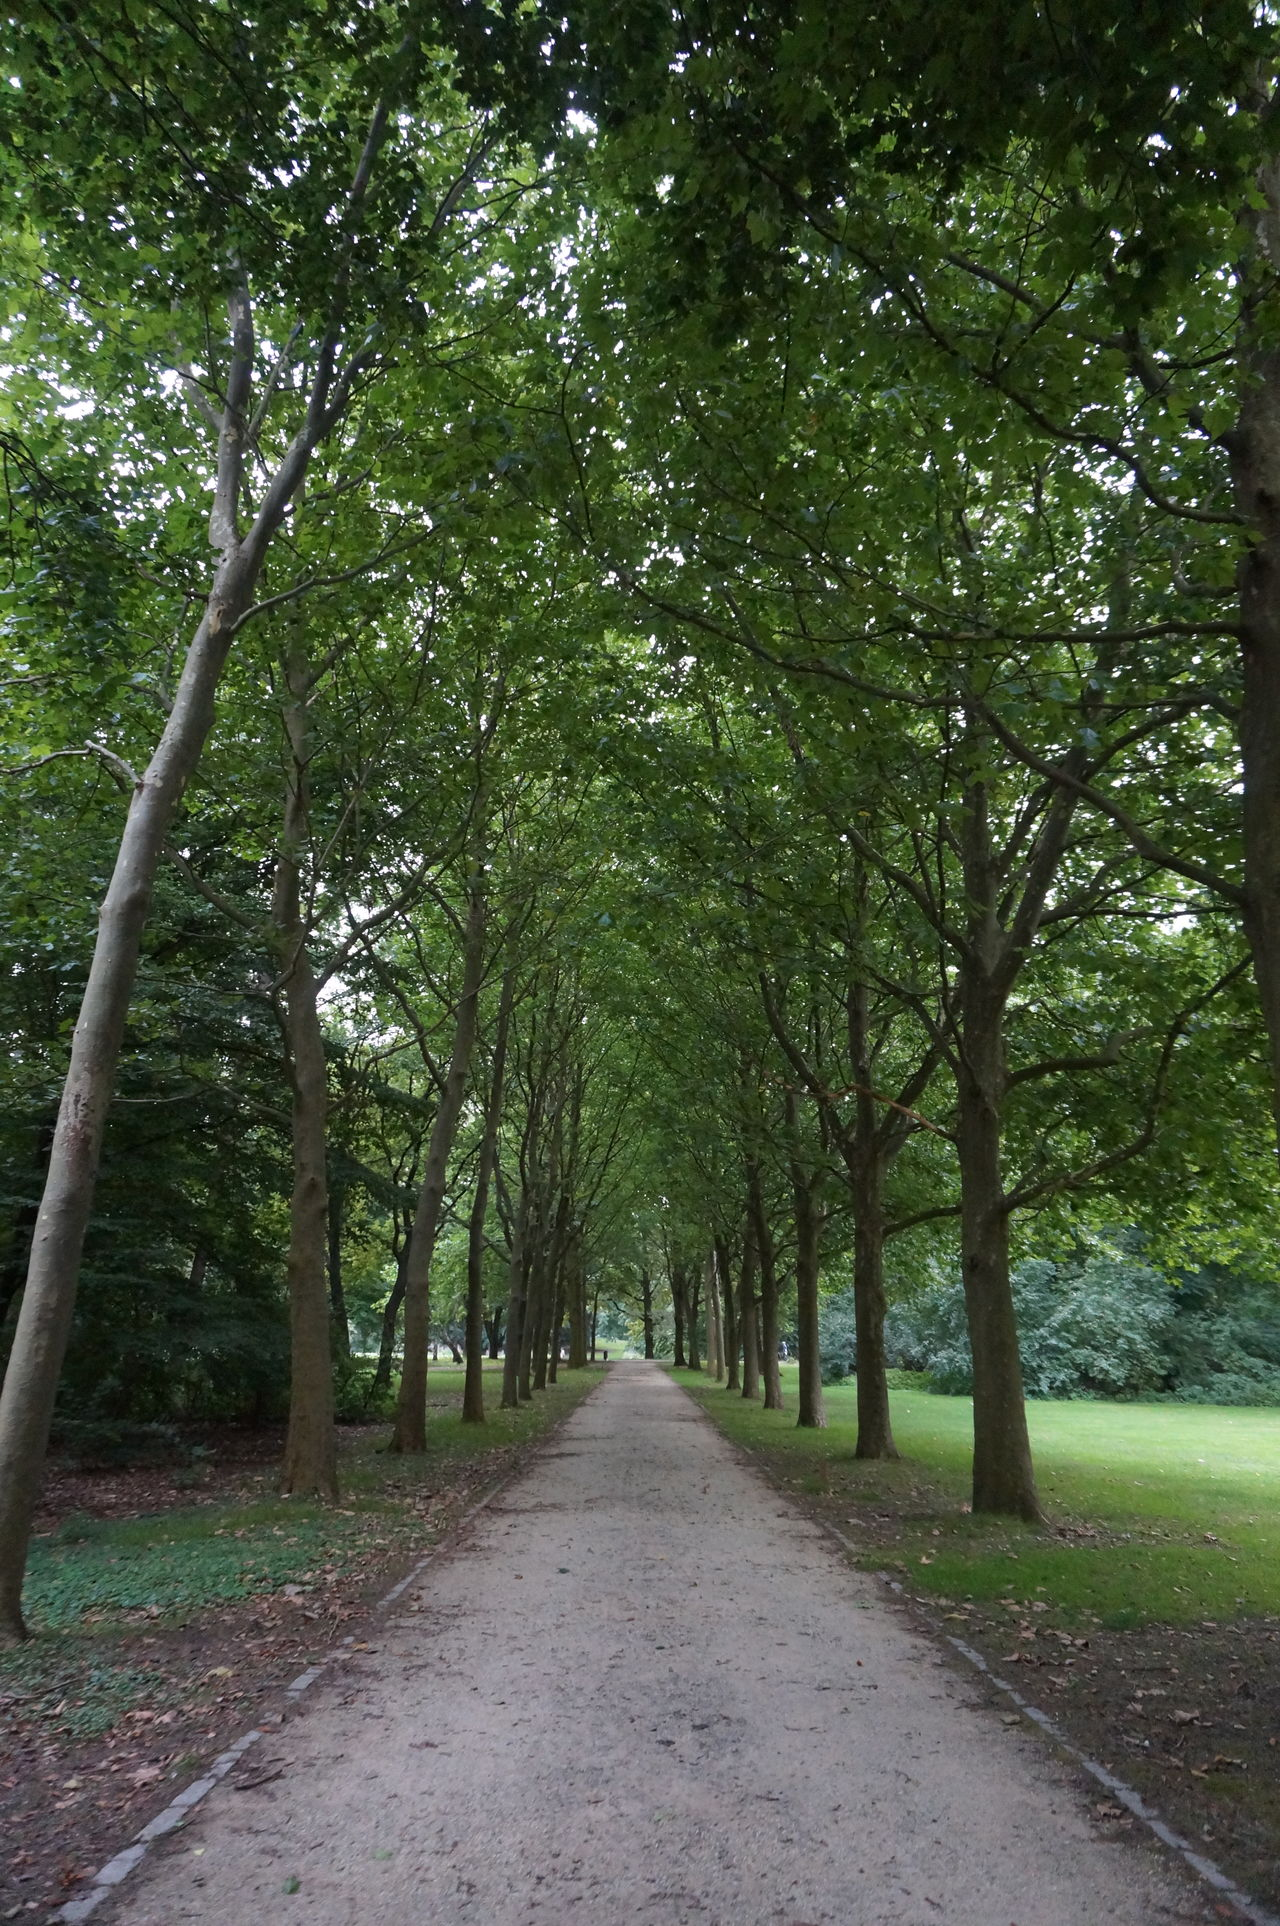 Day Endless Green Nature No People Outdoors Park Promenade Trees Walking Path Way Your Way